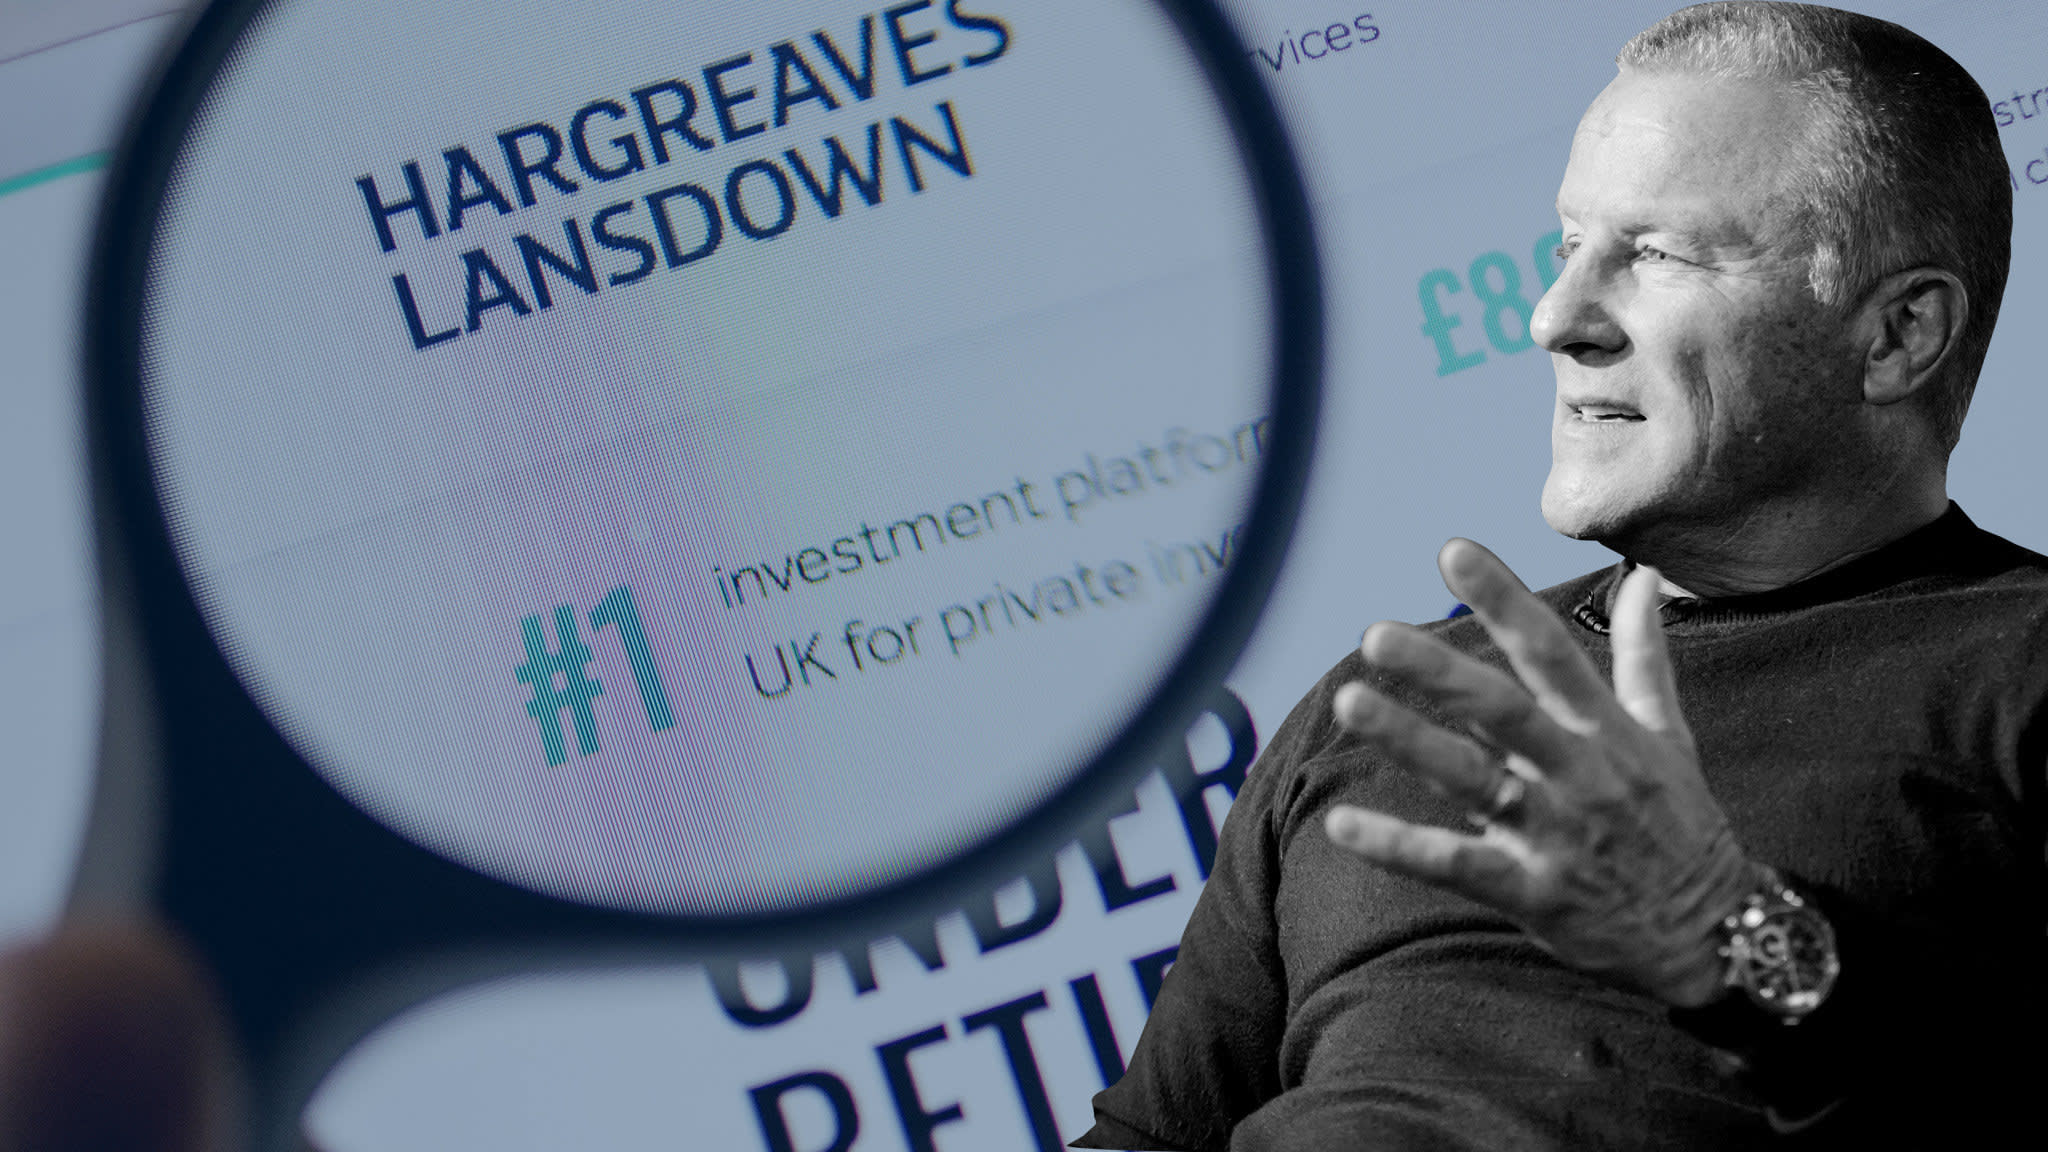 Hargreaves and Woodford: What are the industry repercussions?